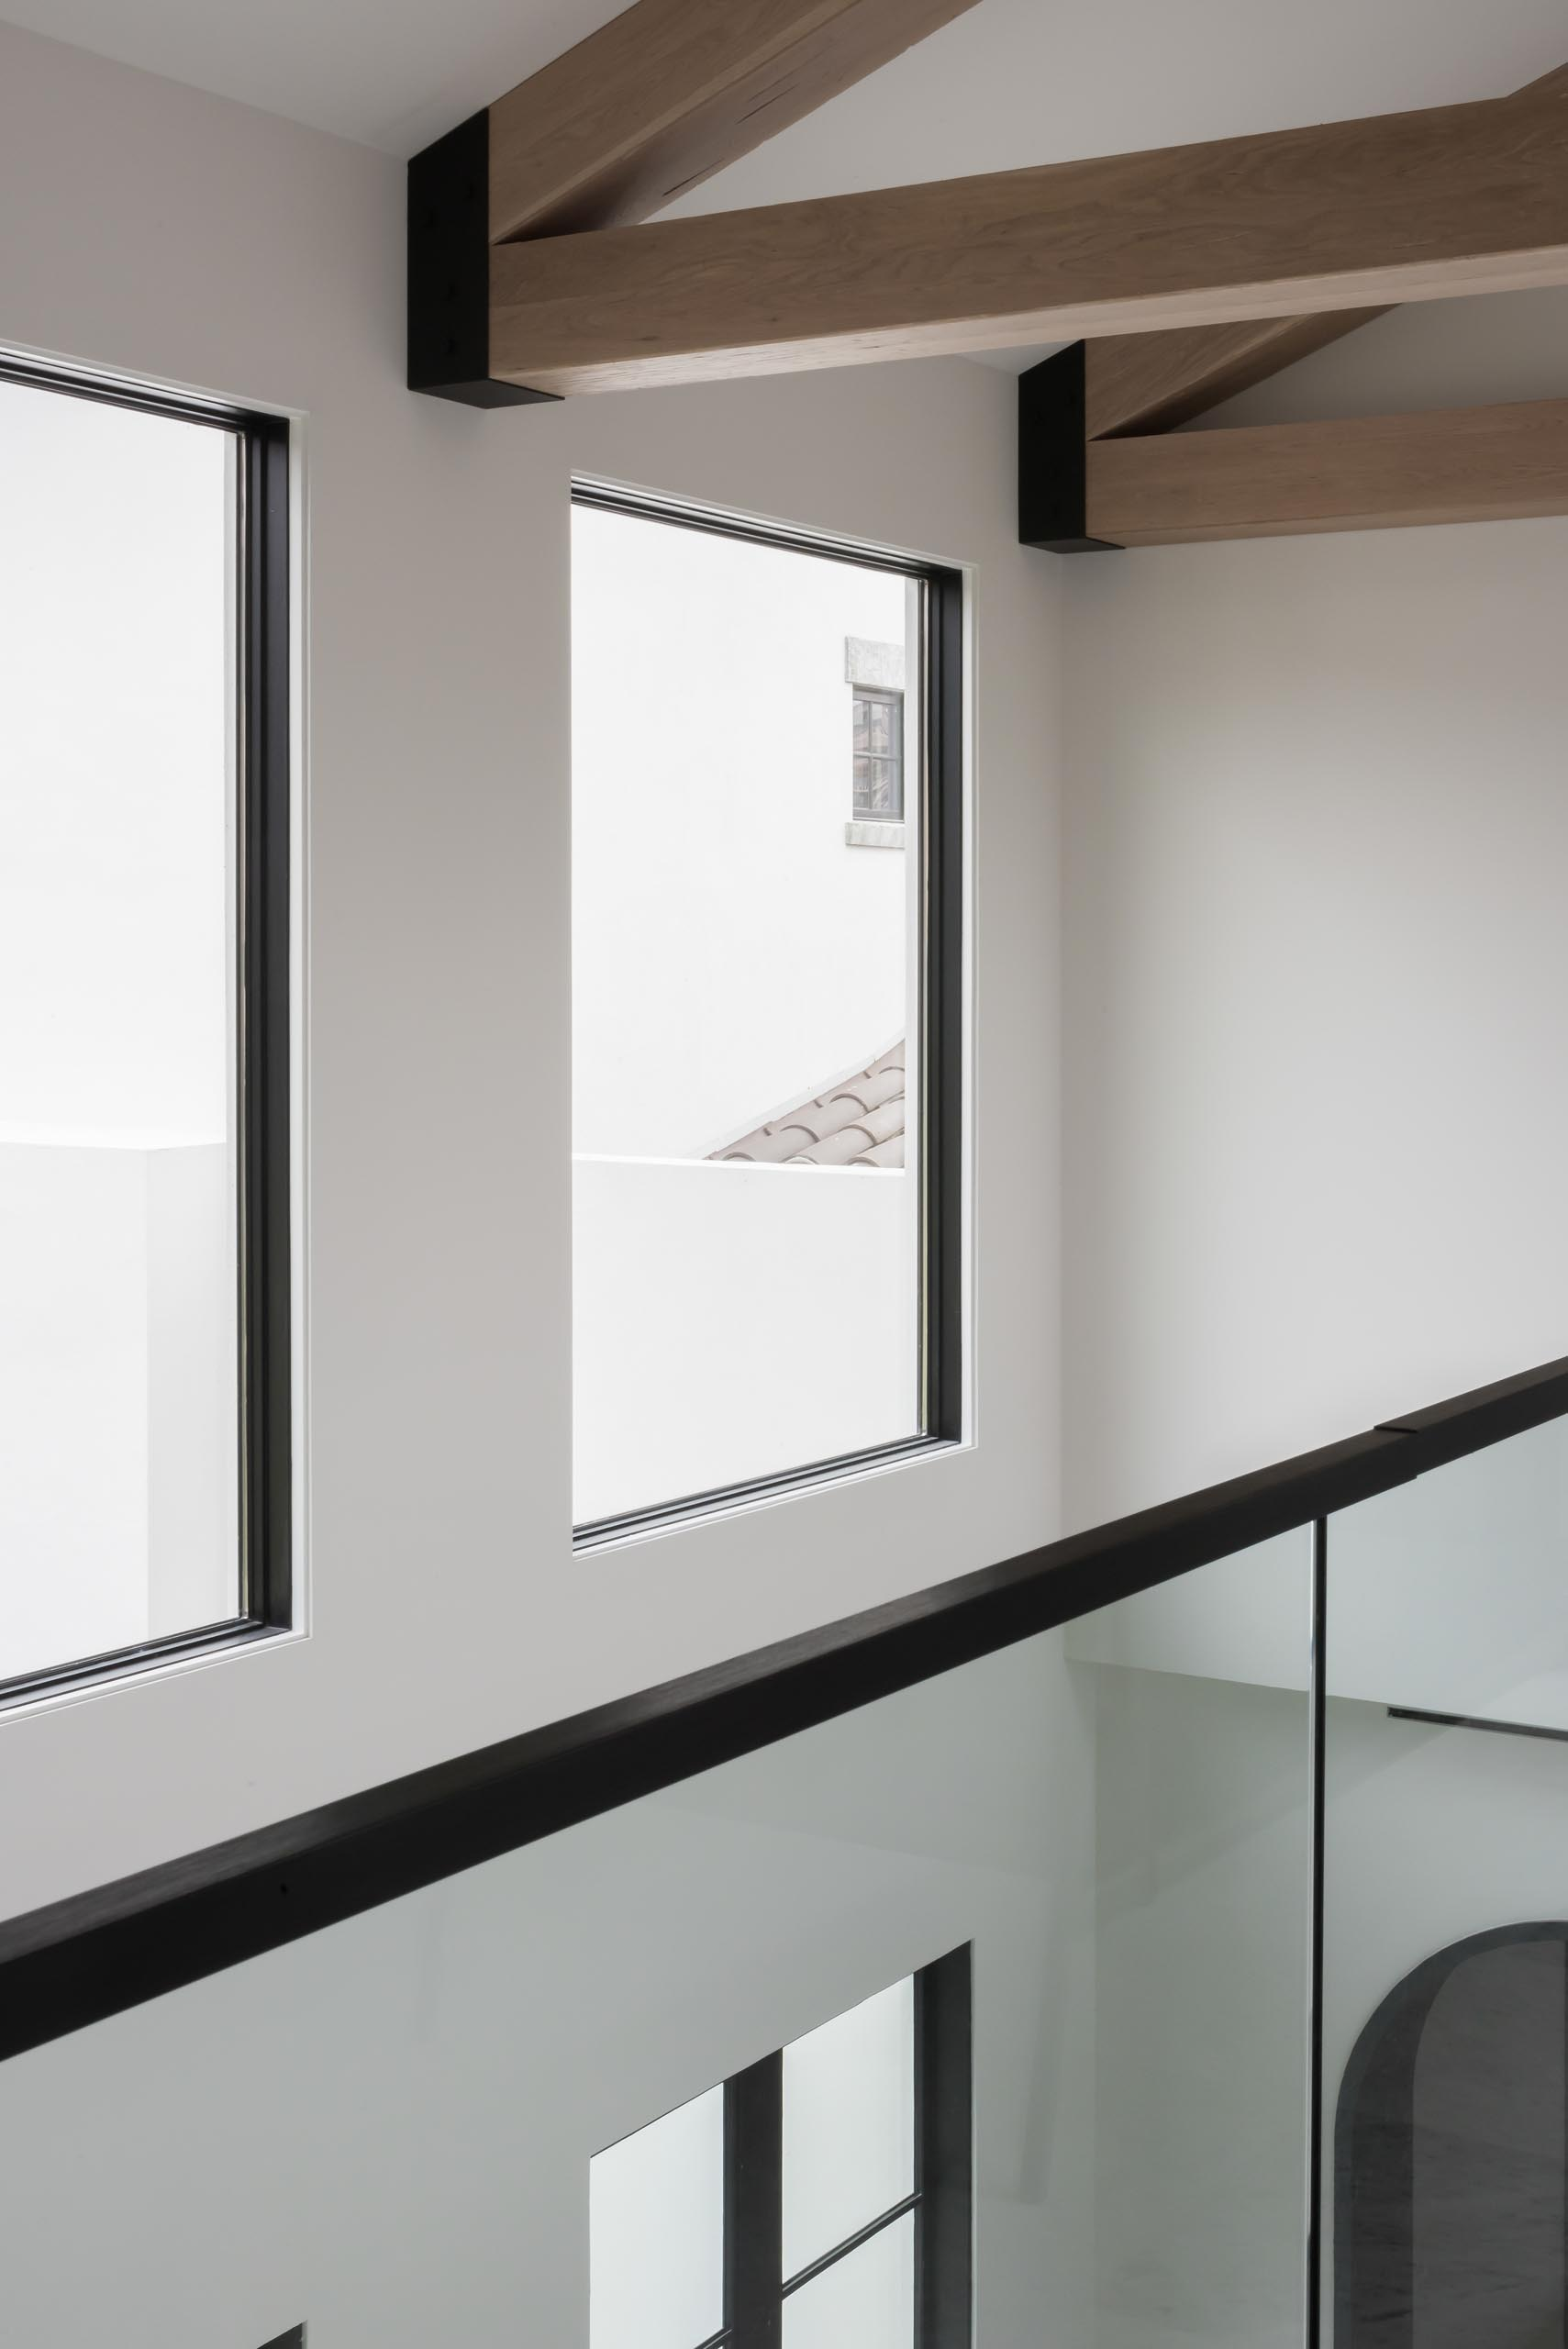 A modern interior with exposed wood trusses and black window frames.